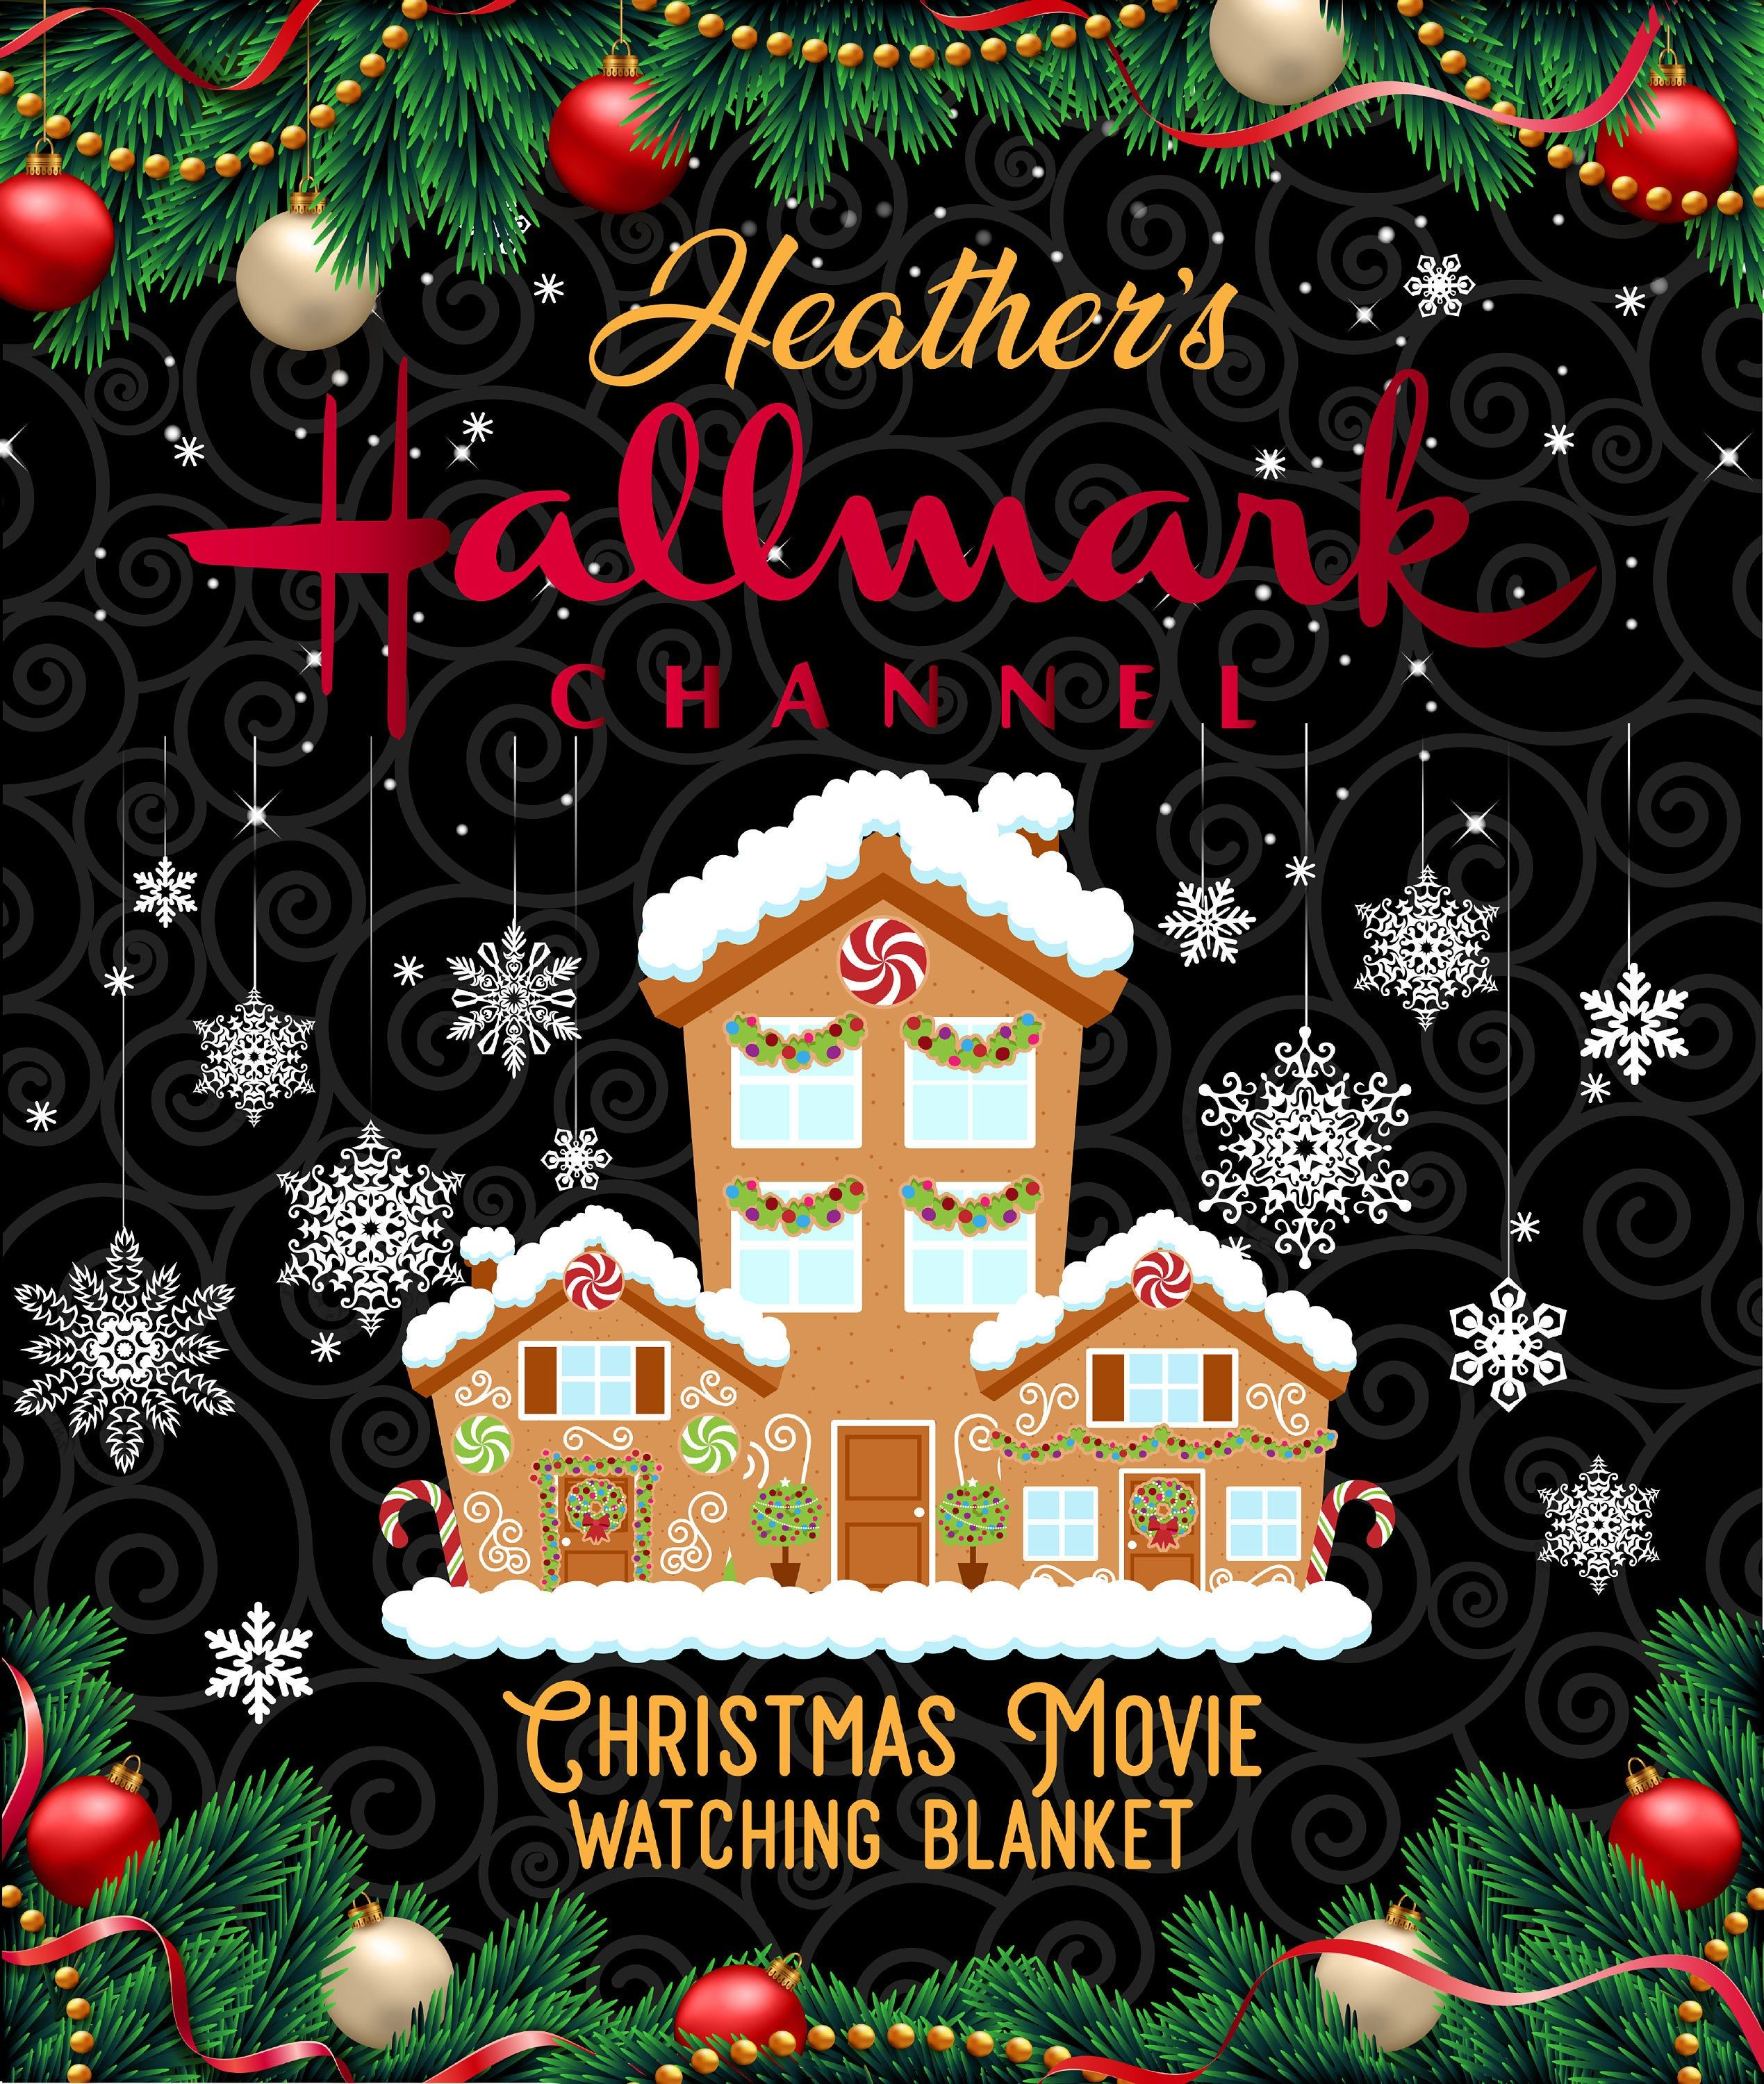 Personalized Hallmark Christmas Movie Blanket Hallmark